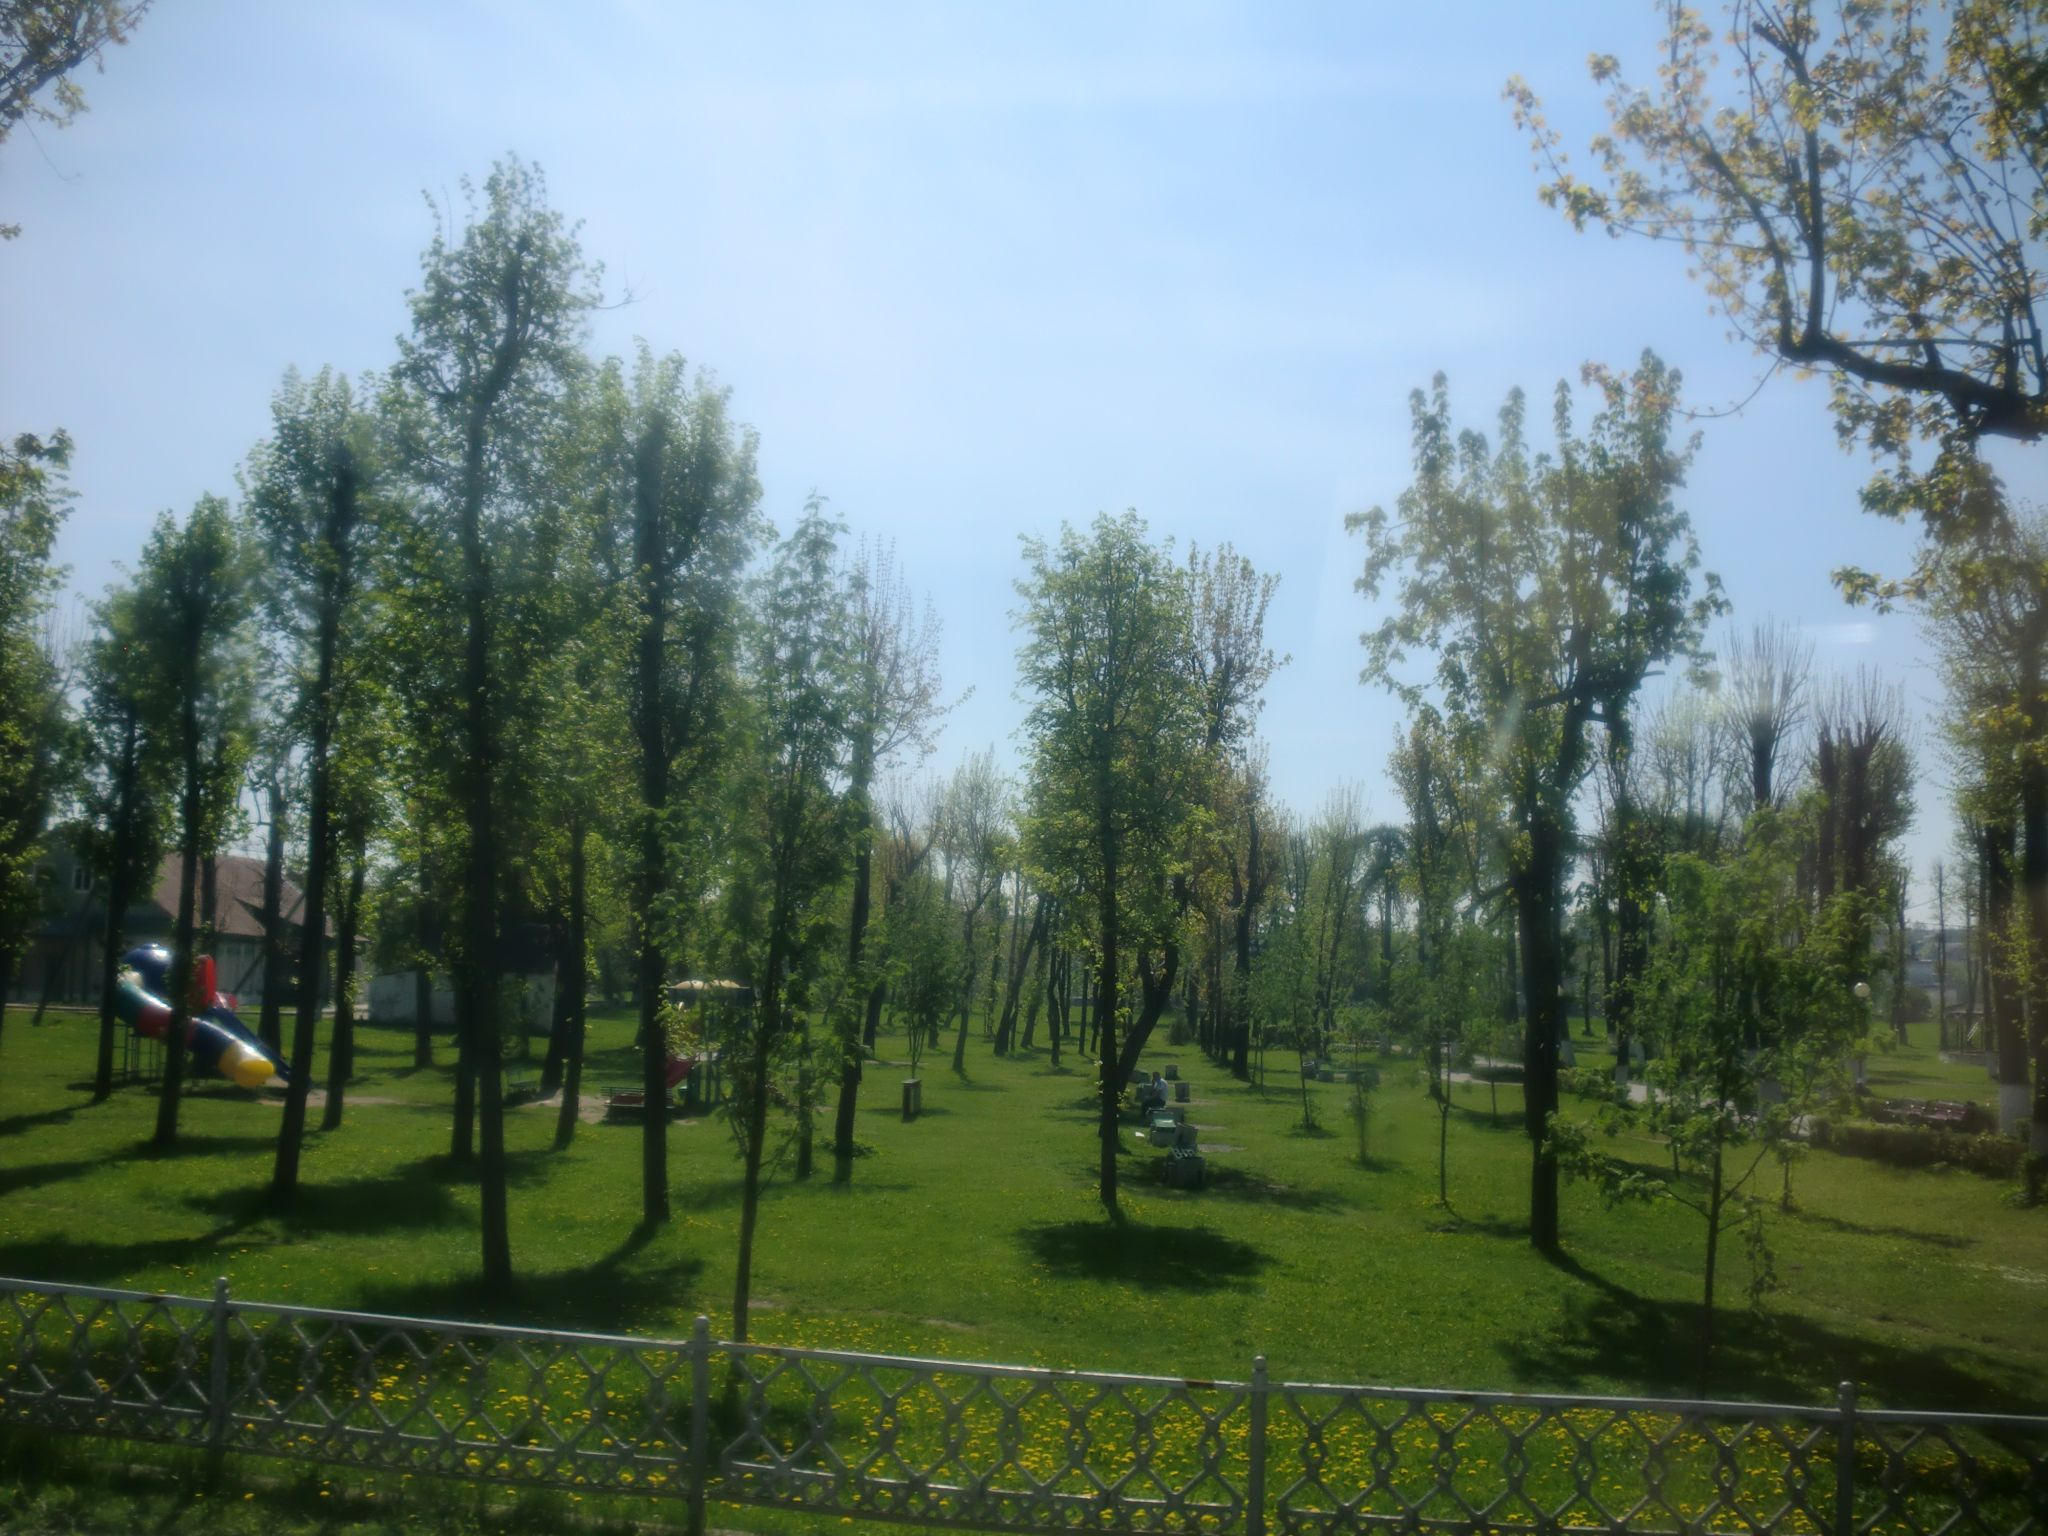 From Vilnius to Minsk by bus: trees